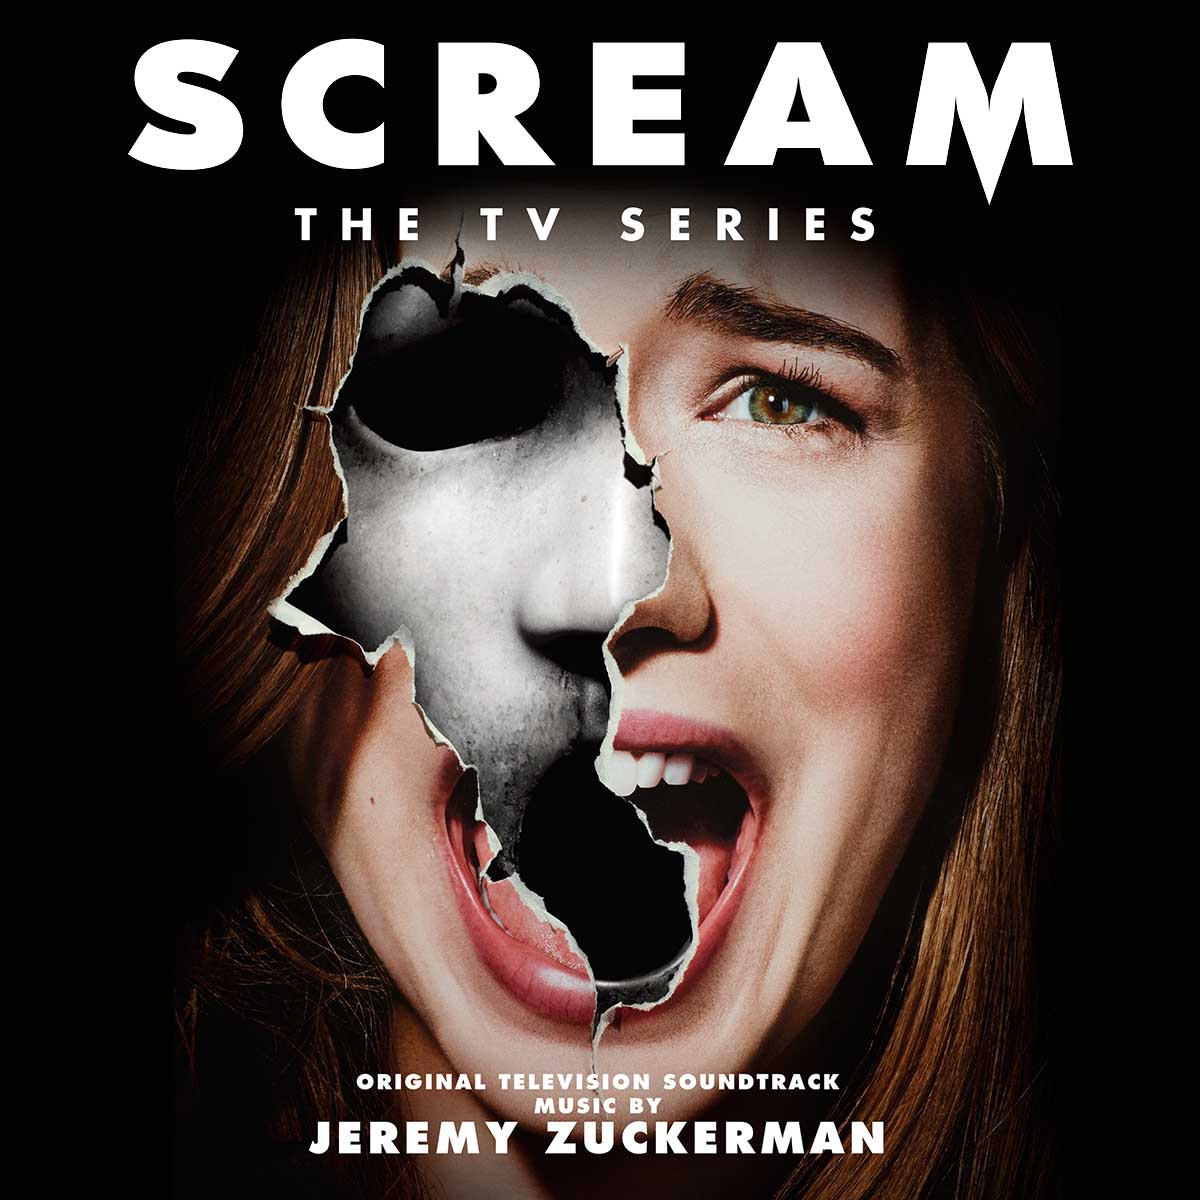 scream_soundtrack_jeremy-zuckerman